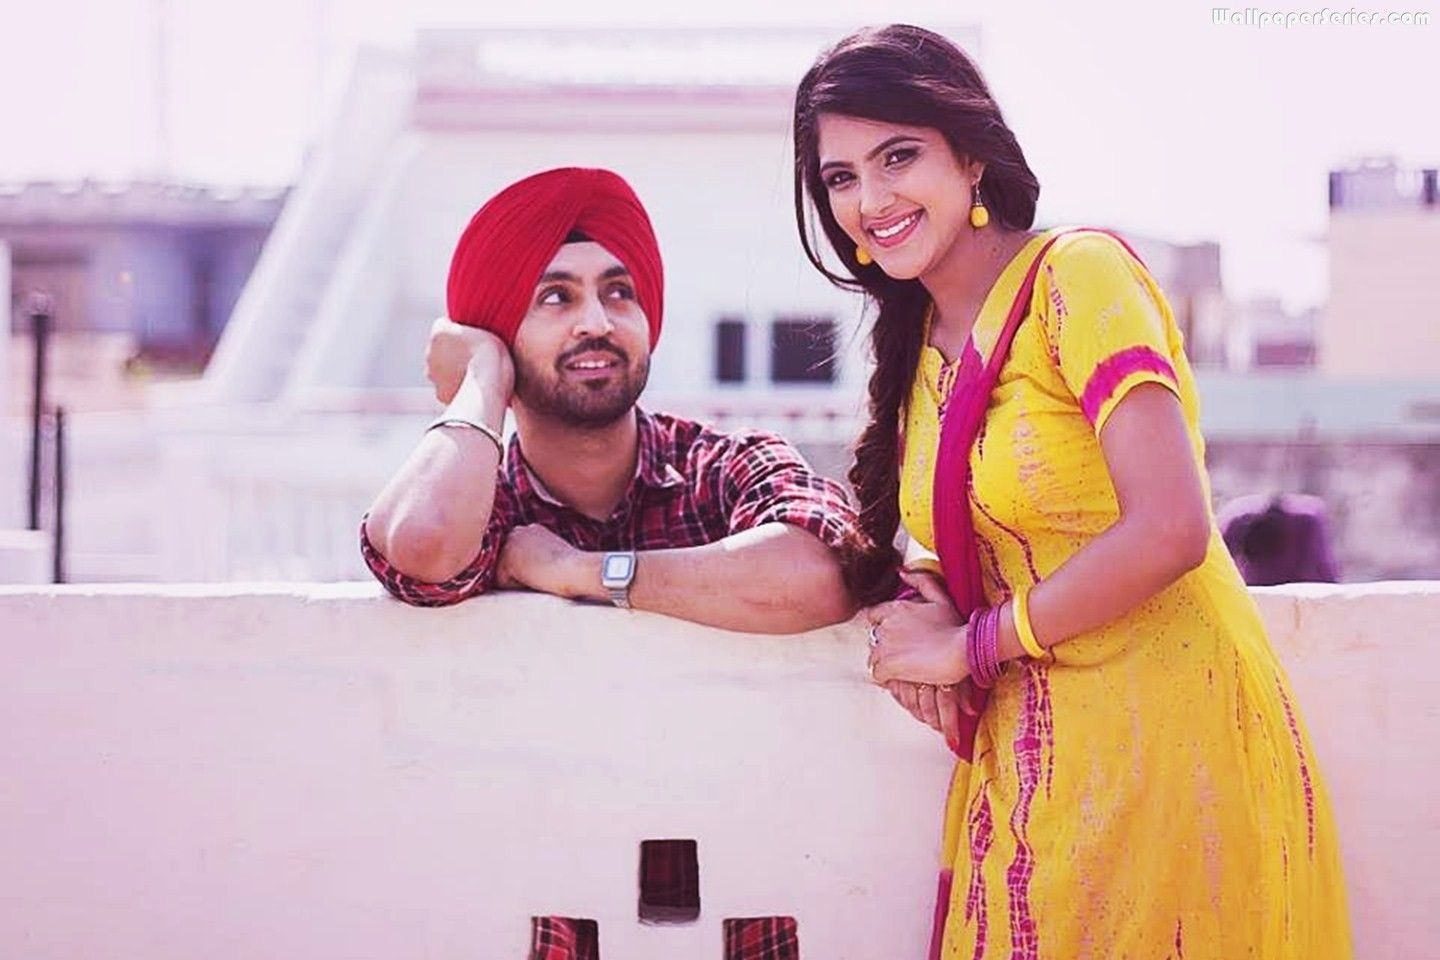 Punjabi Couple Wallpapers Hd Pictures One Hd Wallpaper Punjabi Couple Wedding Songs Boy And Girl Wallpaper